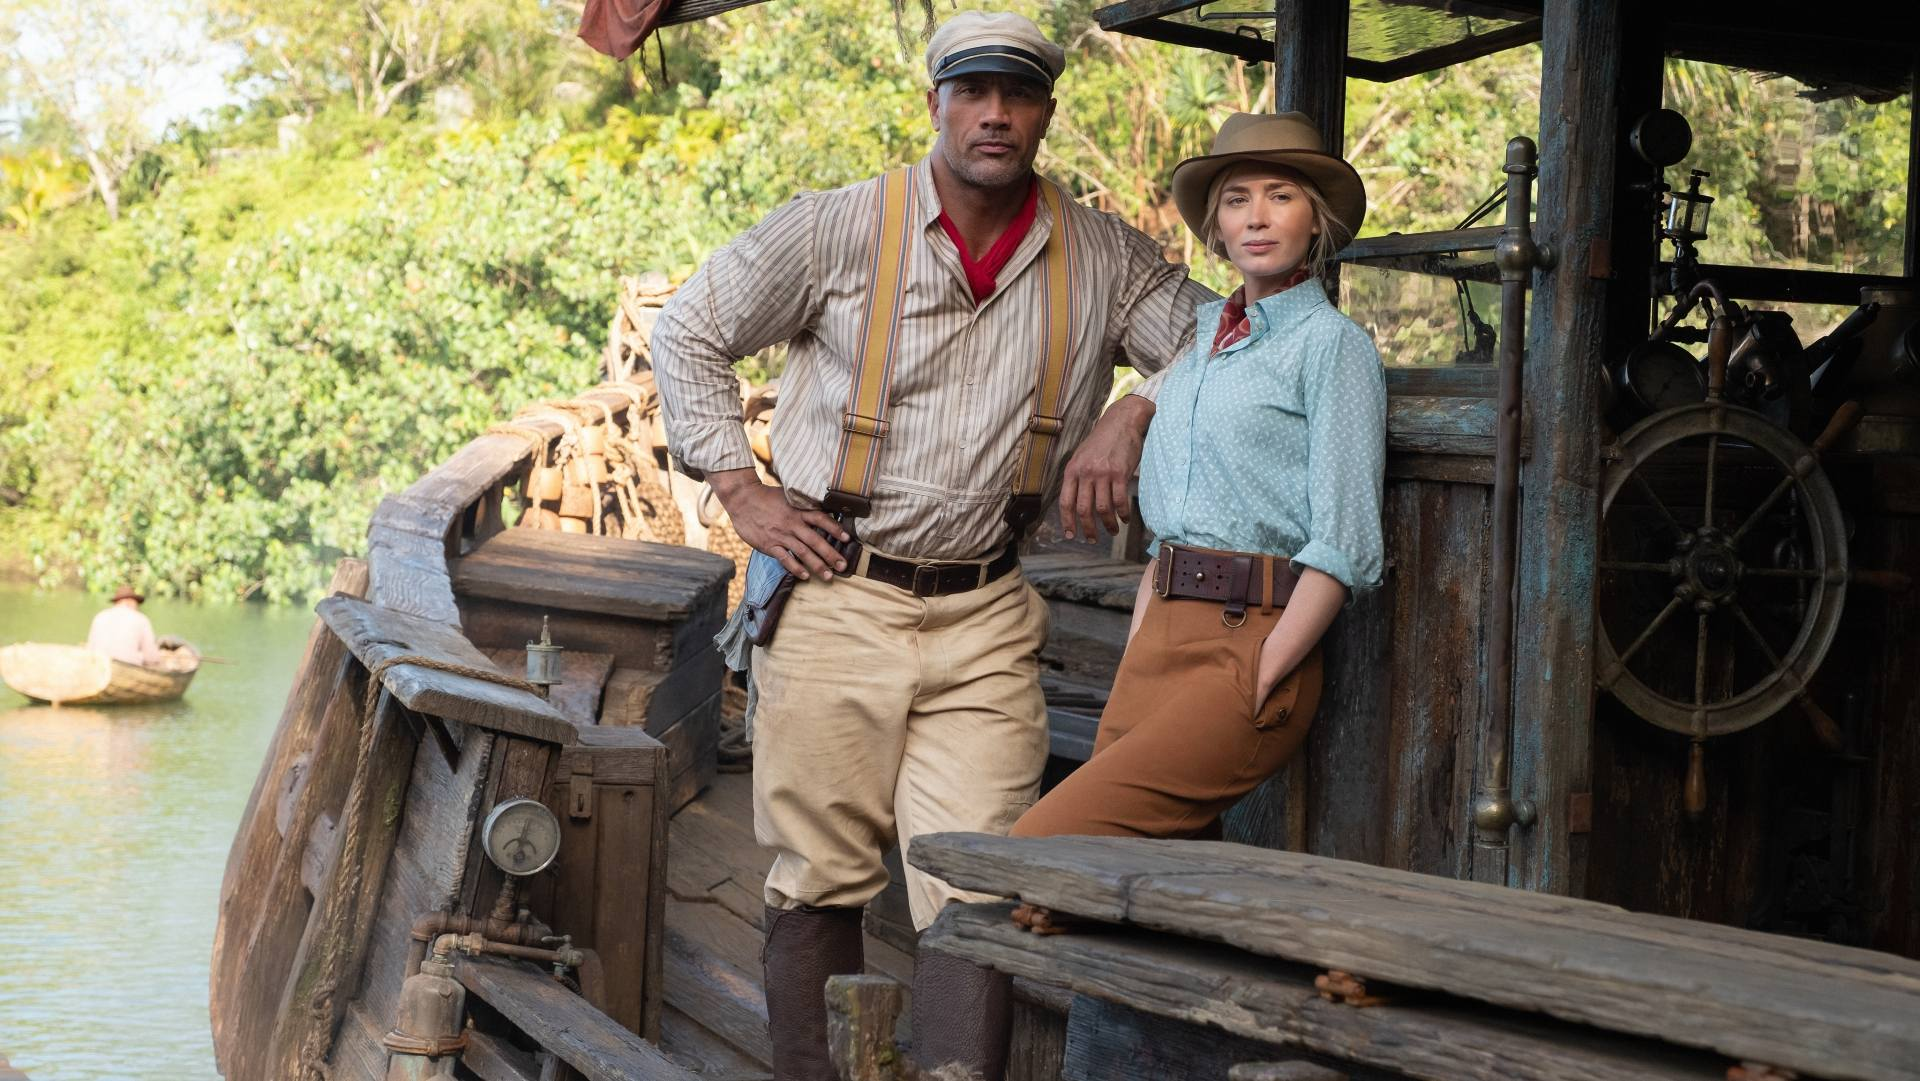 Jungle Cruise Review: Light-hearted Summer Fun